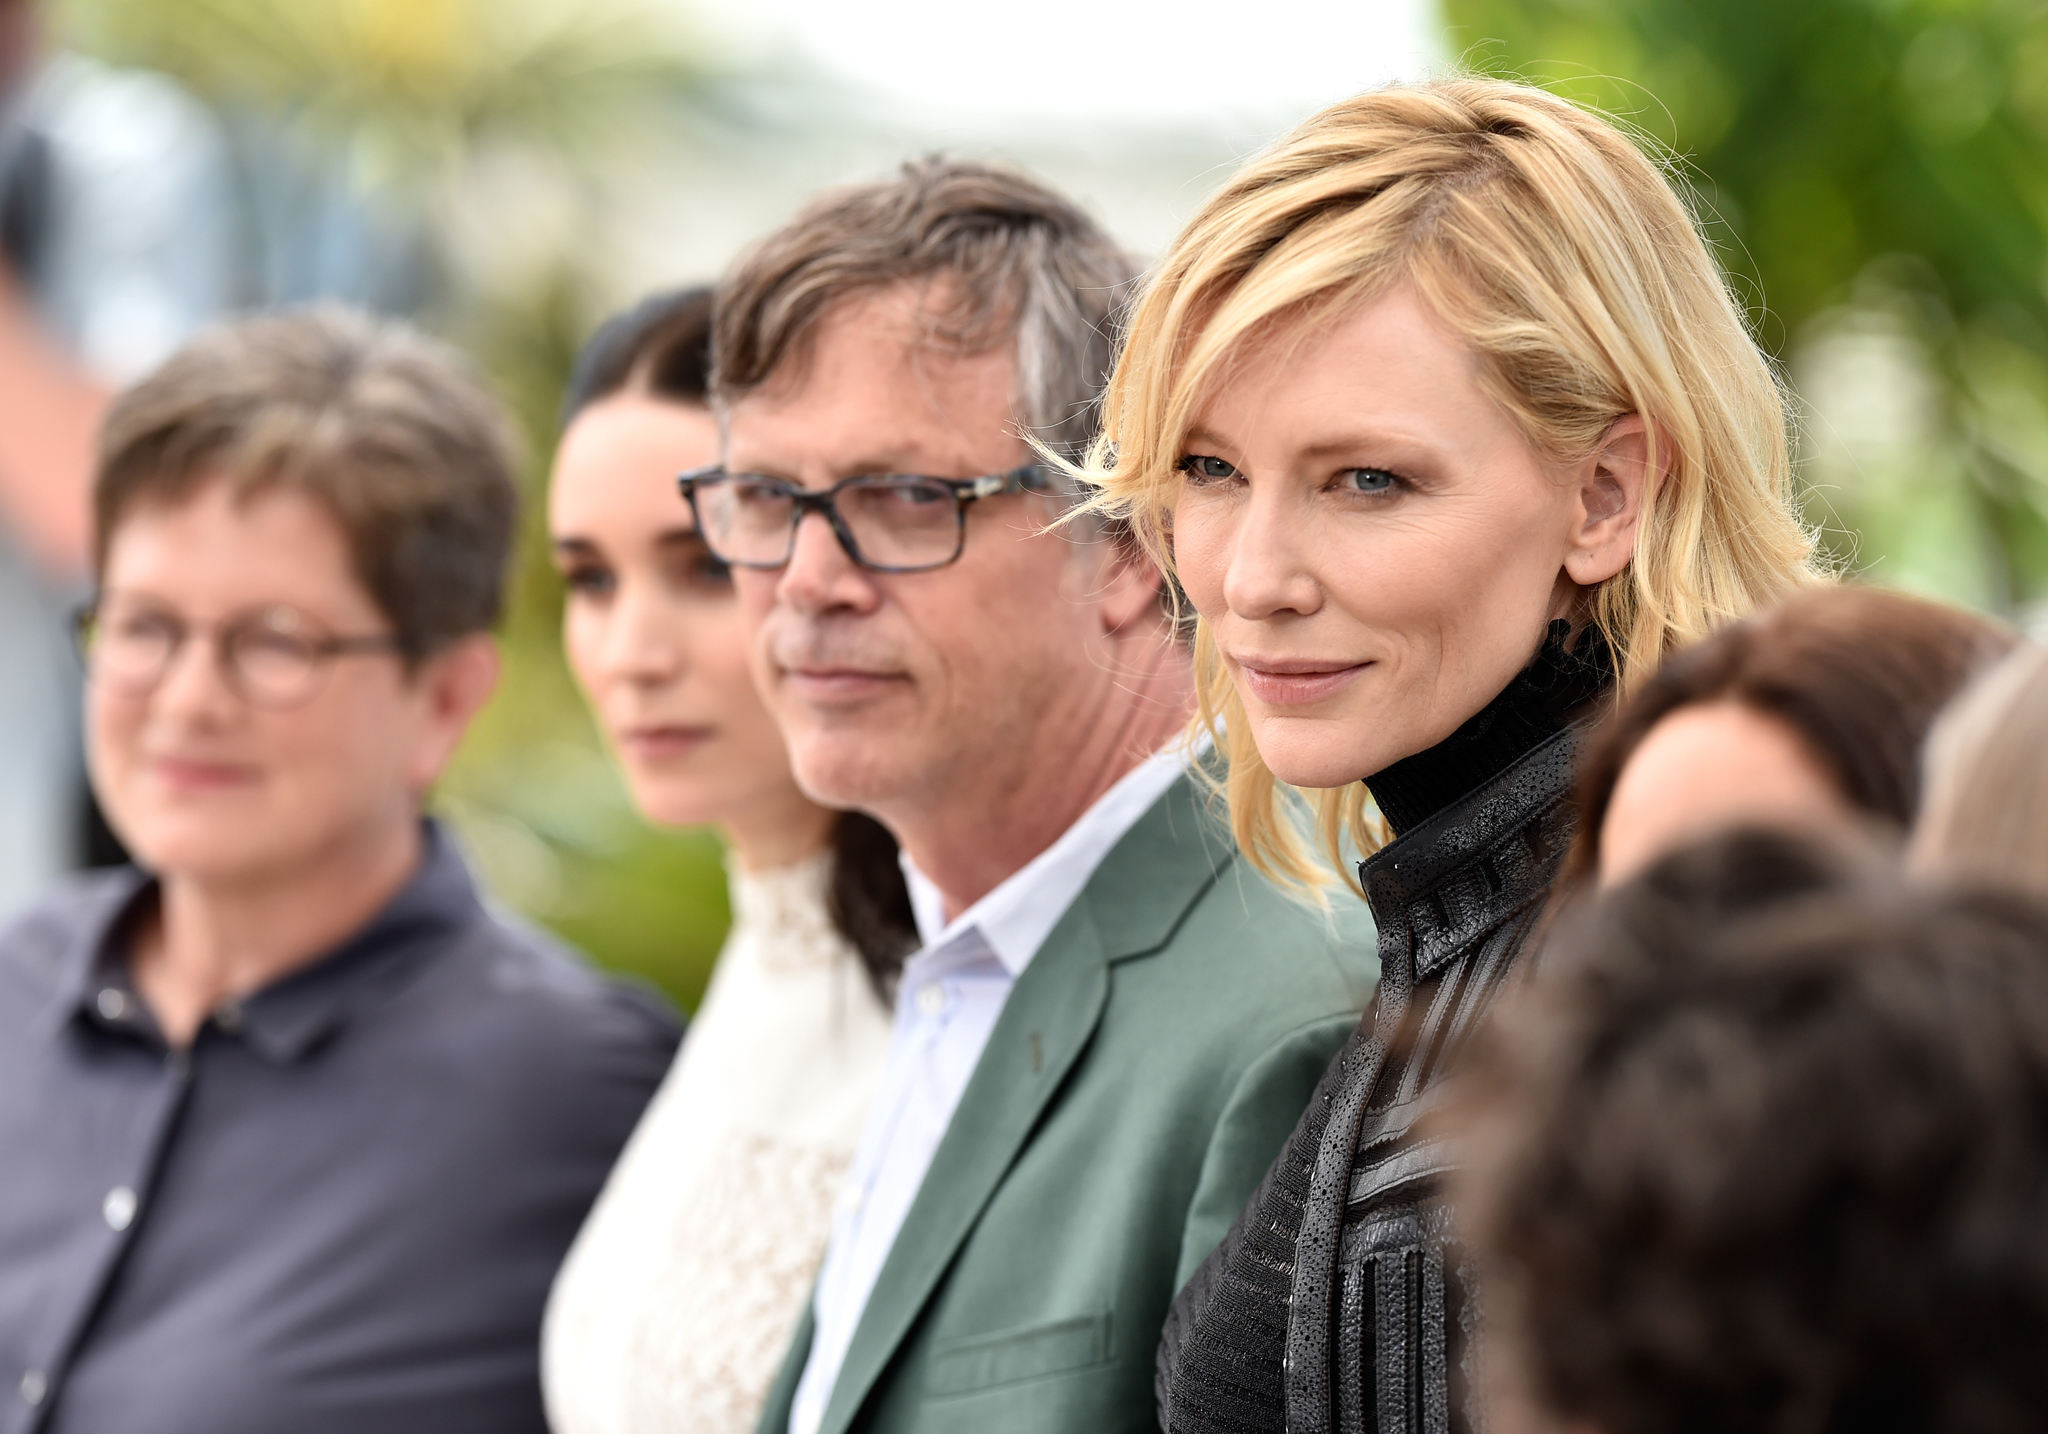 Cate Blanchett, Todd Haynes, Phyllis Nagy, and Rooney Mara at an event for Carol (2015)